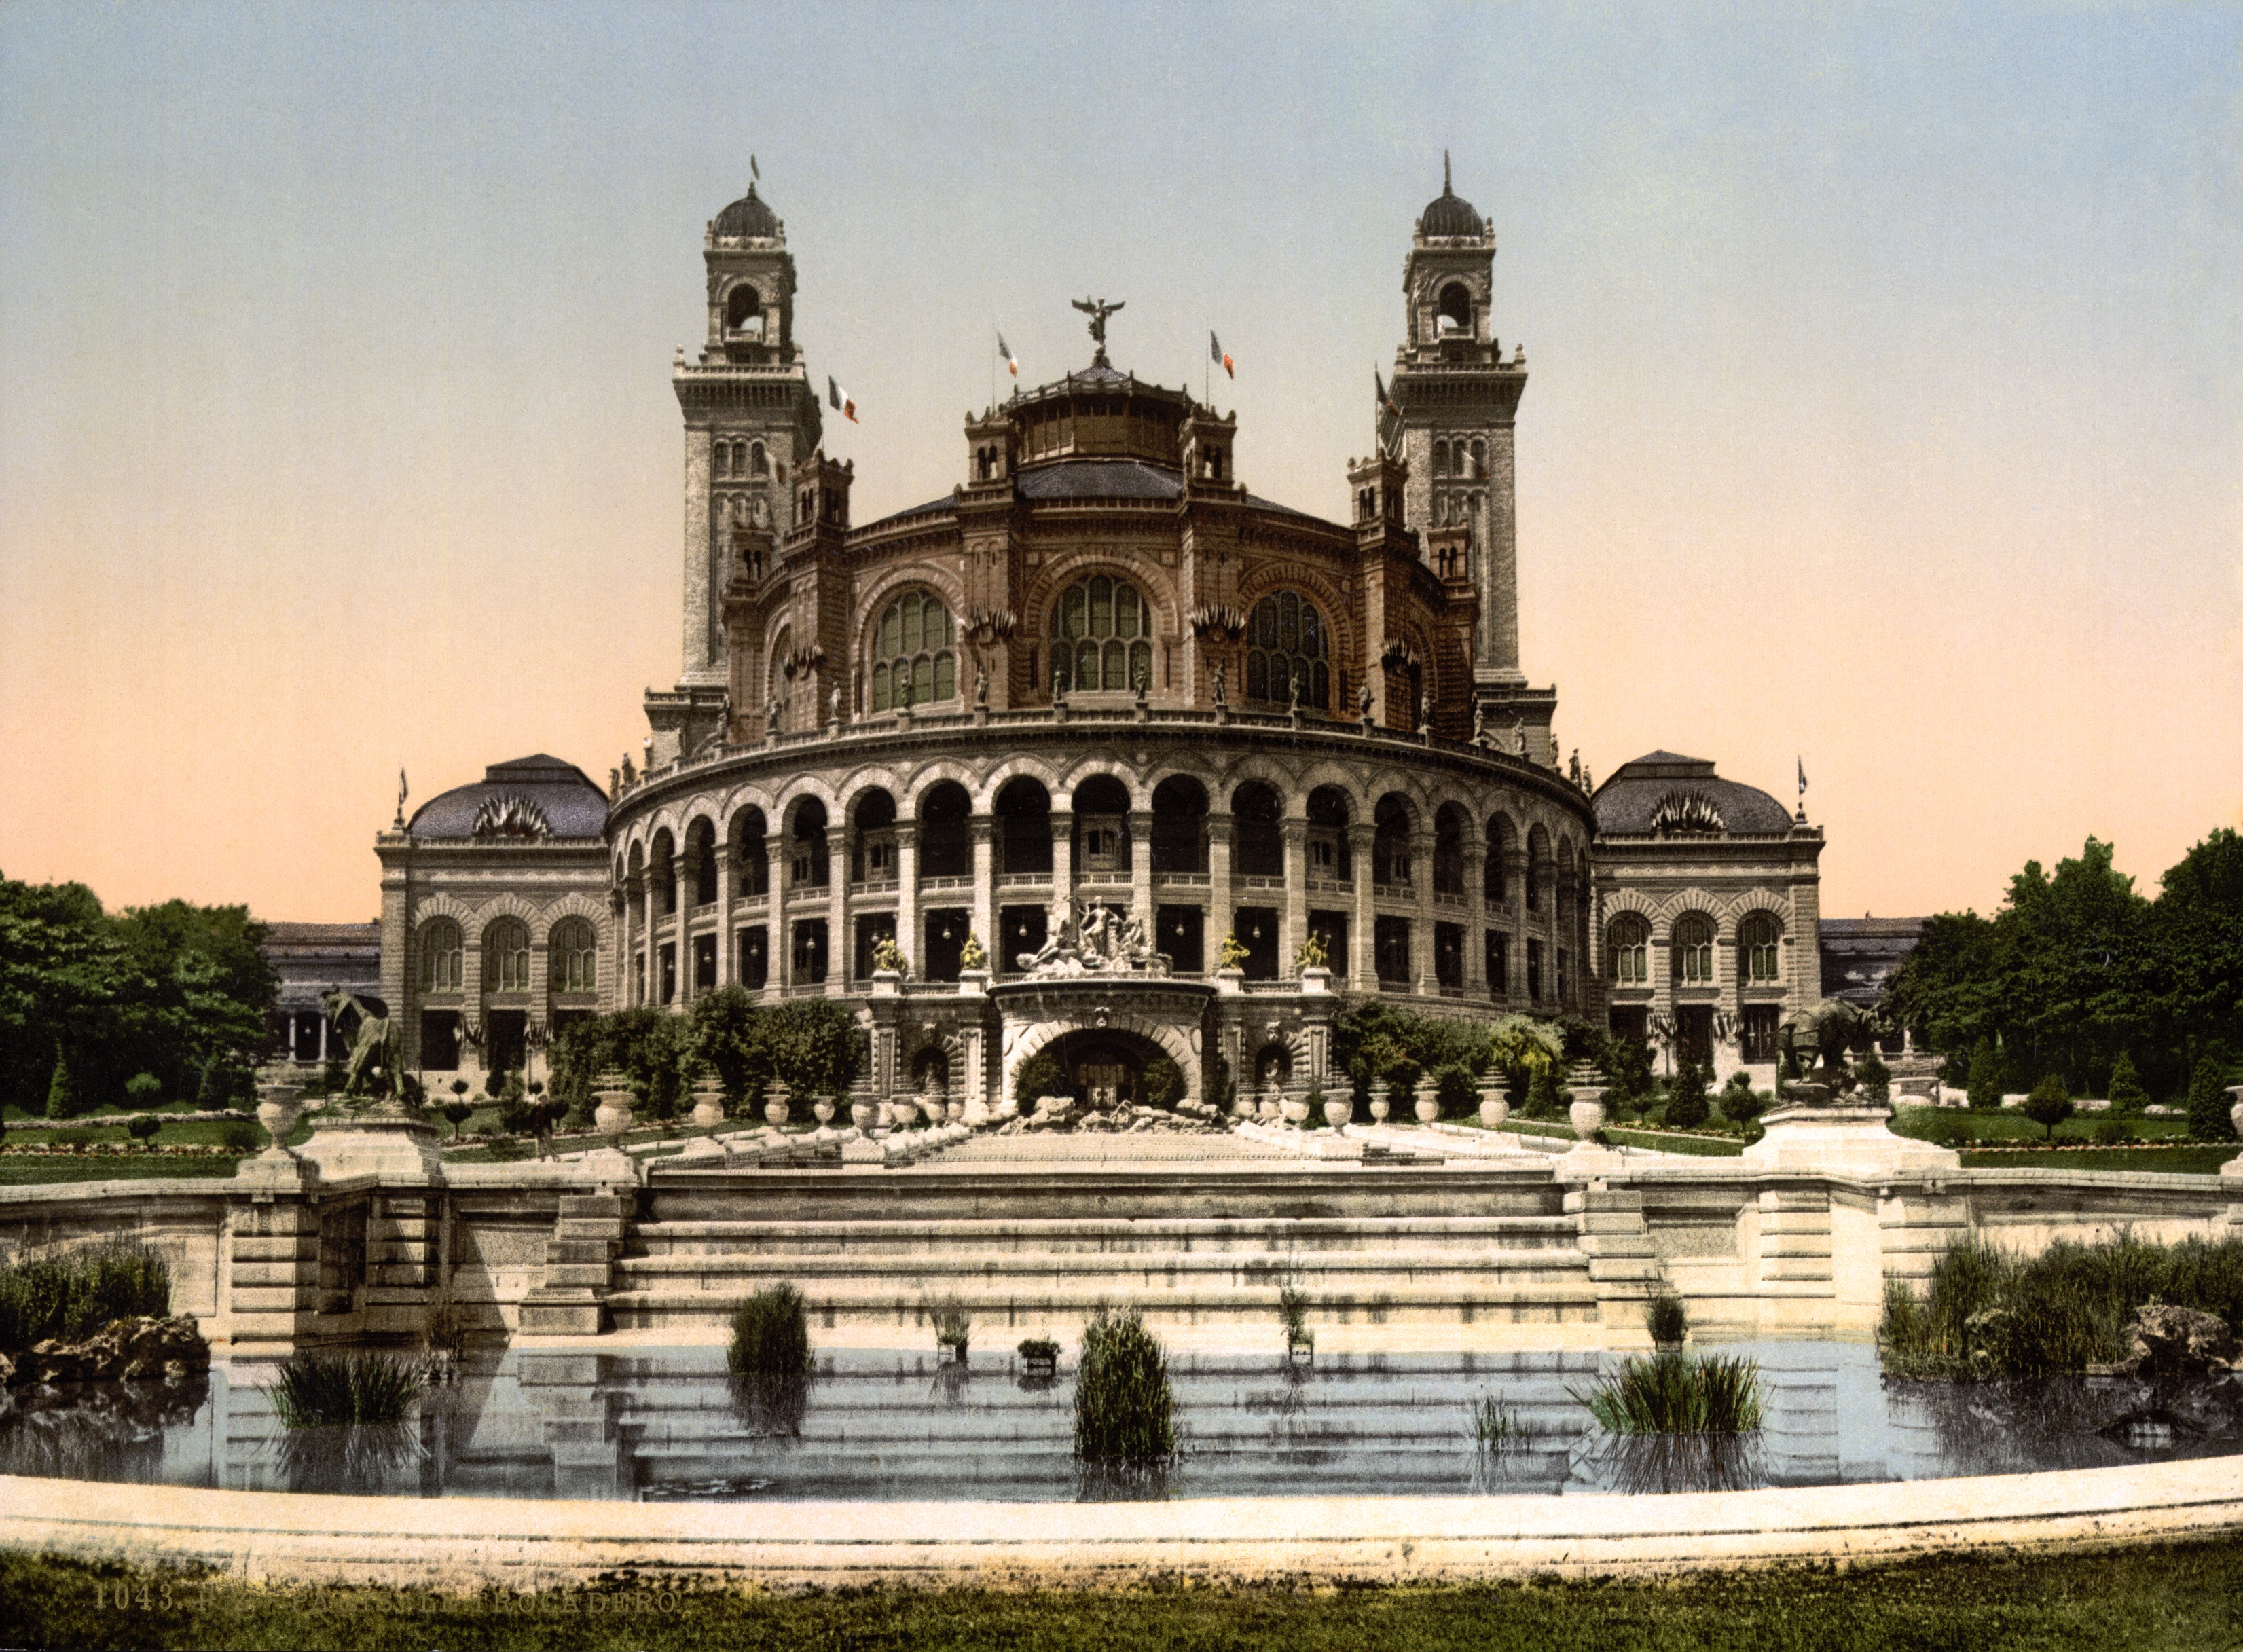 http://upload.wikimedia.org/wikipedia/commons/7/70/The_Trocadero,_Exposition_Universal,_1900,_Paris,_France.jpg